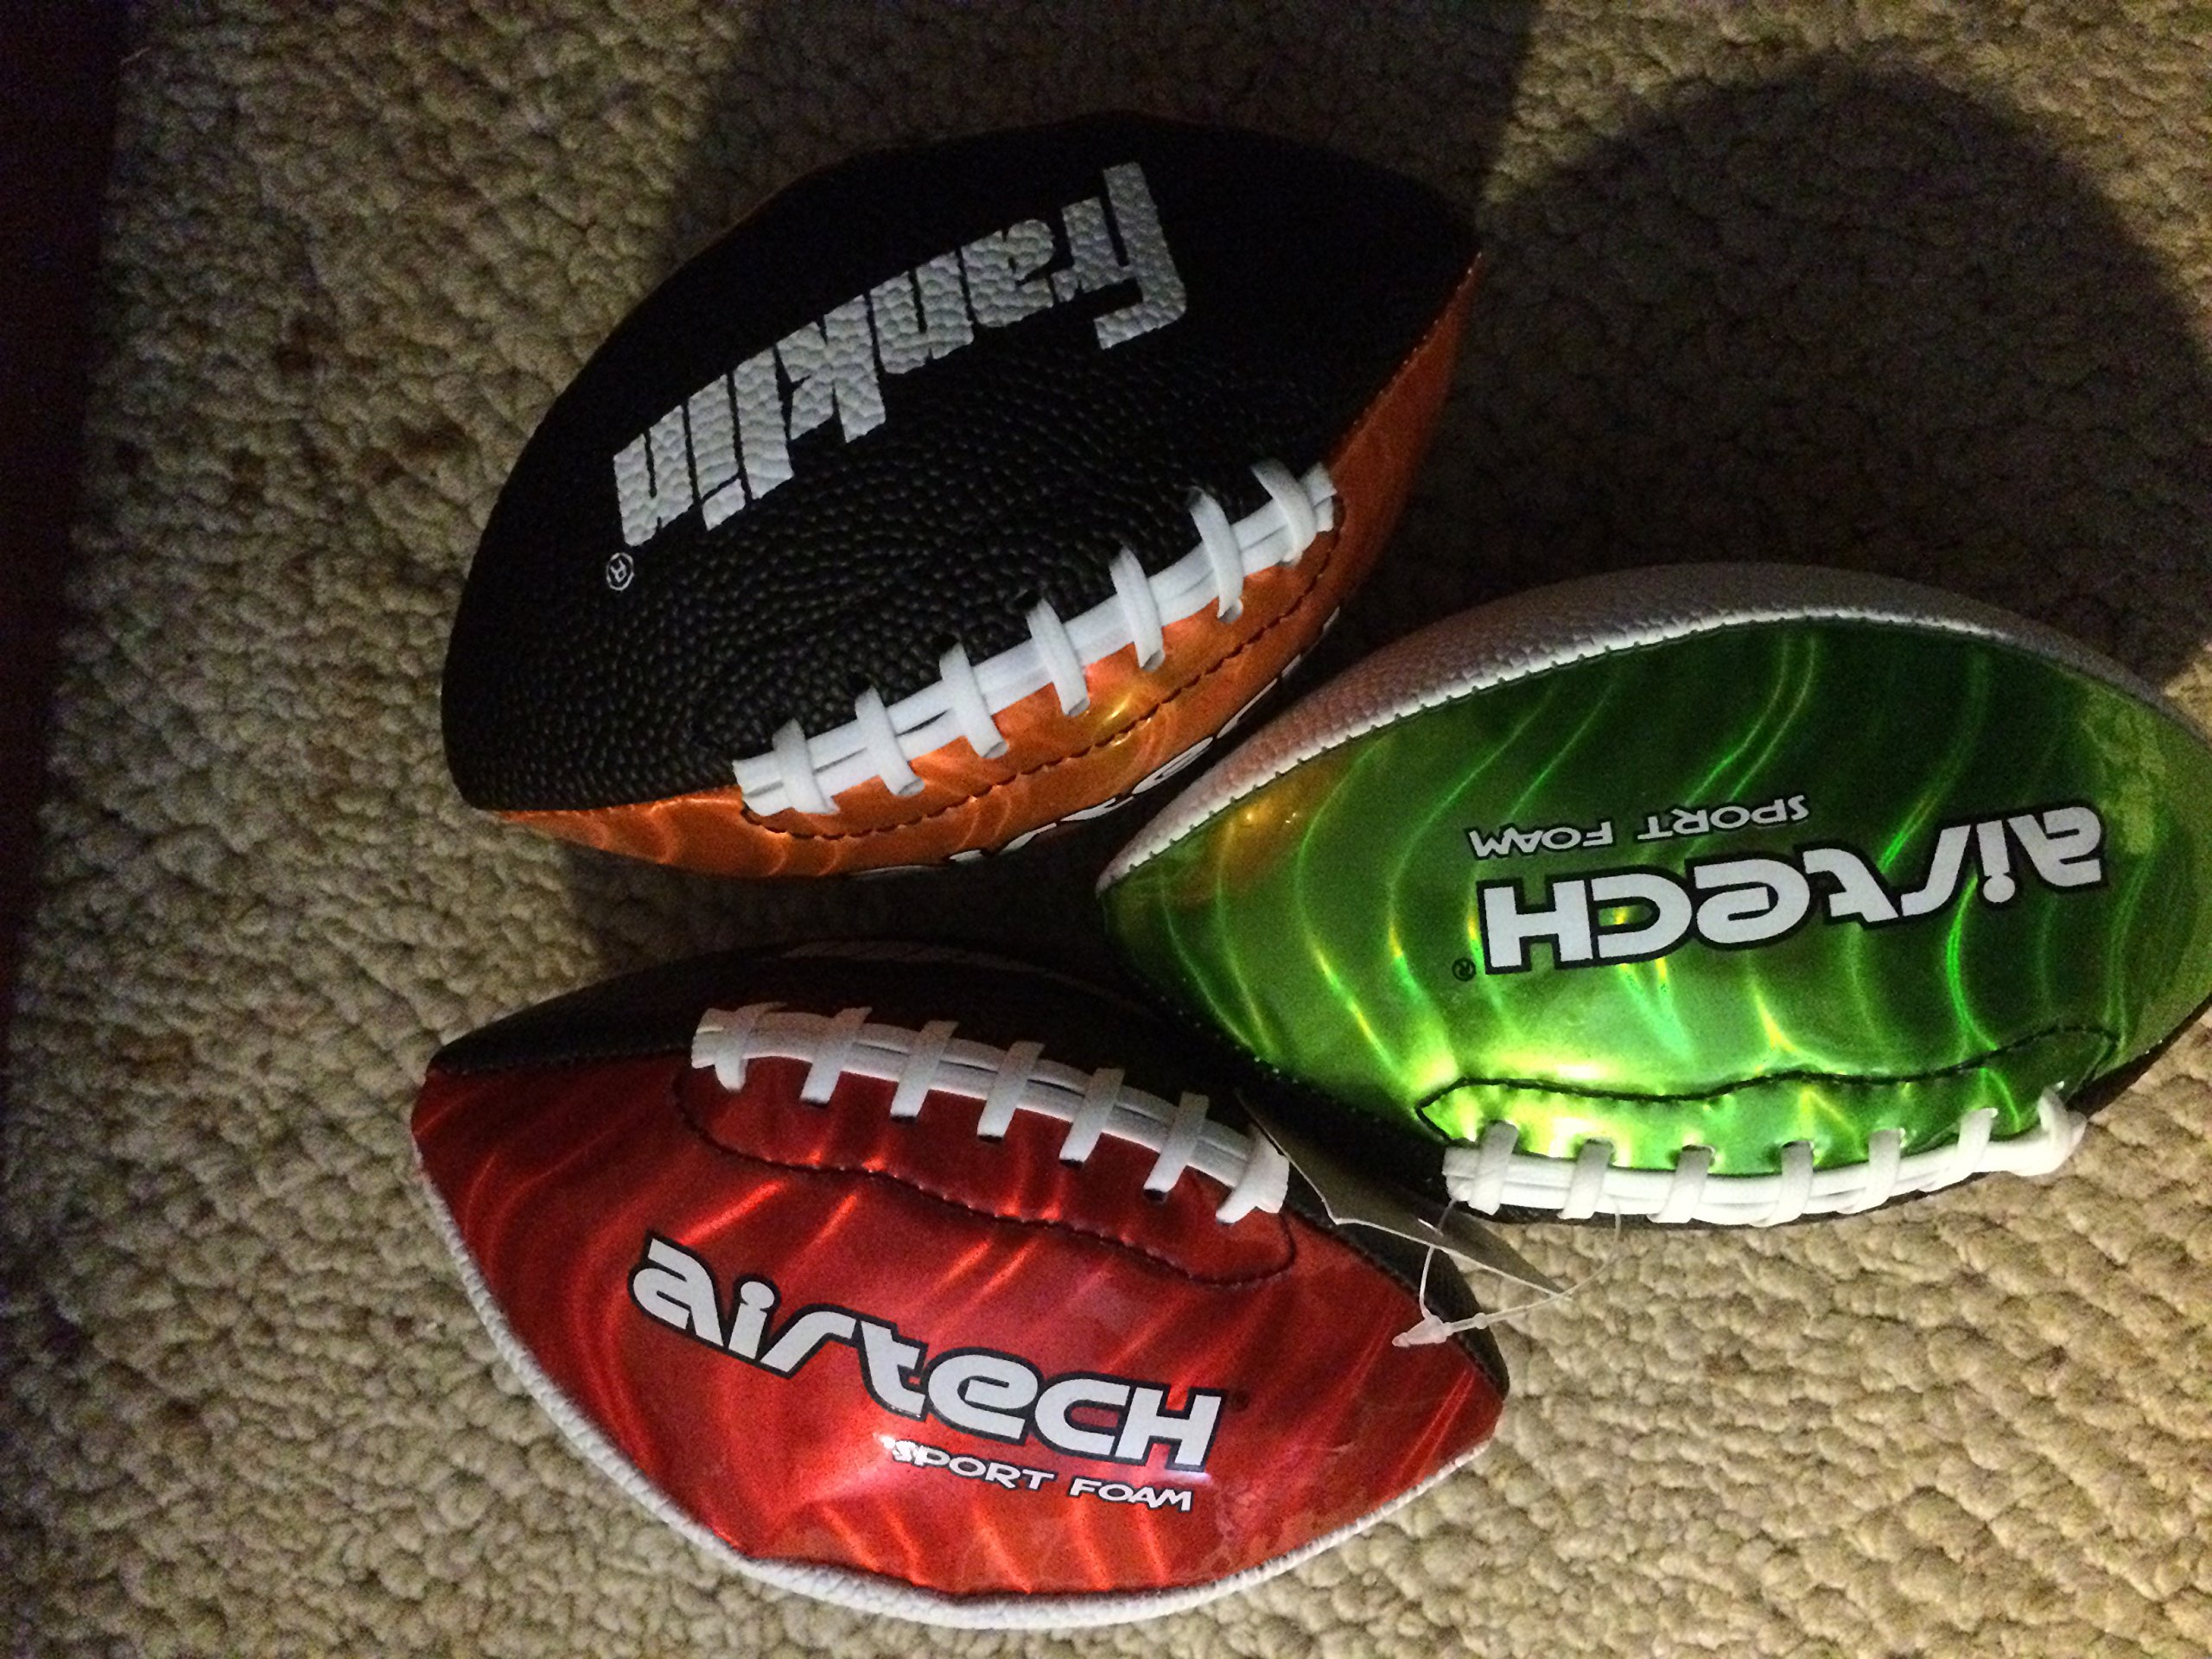 Franklin Air Tech Sport Foam Mini Football, Sold Individually, Colors & Styles Vary